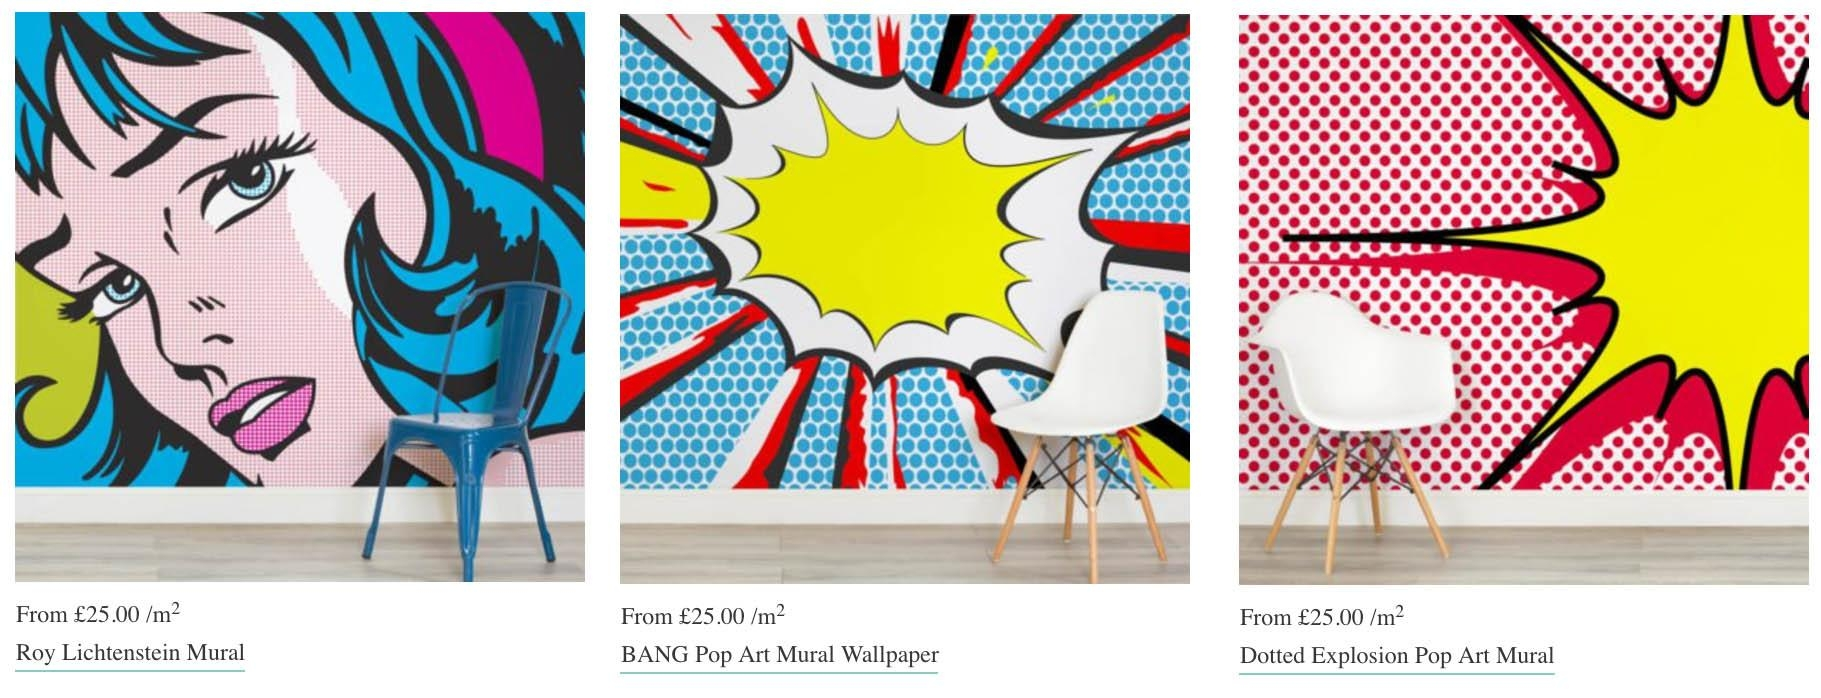 This Is Some Pretty Cool Retro Wallpaper | Retromash Throughout Pop Art Wallpaper For Walls (View 12 of 20)